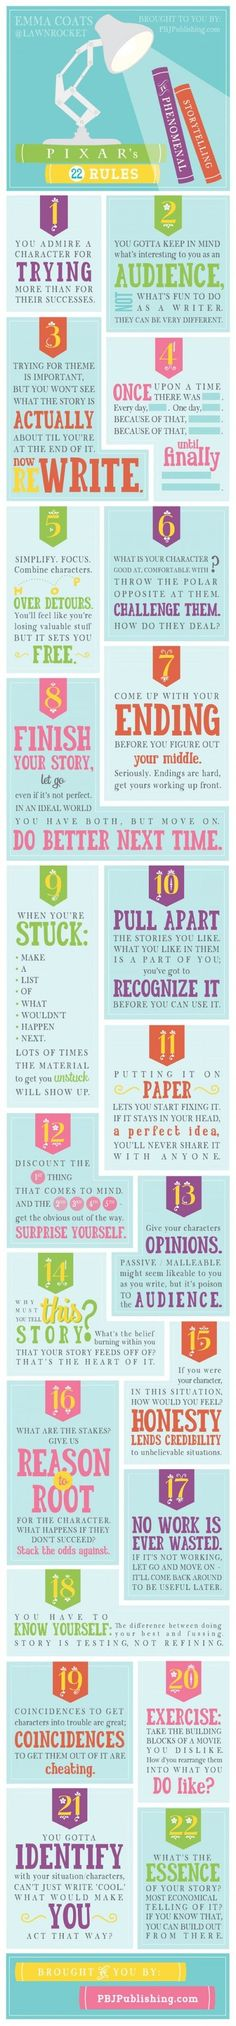 "Love anything Pixar! Pixar's 22 Rules to Phenomenal Storytelling (use as example for ""Create Your Own Infographic"" lesson? Writing Advice, Writing Resources, Teaching Writing, Writing Help, Writing Prompts, Persuasive Essays, Writing Services, Essay Writing, Pixar Storytelling"